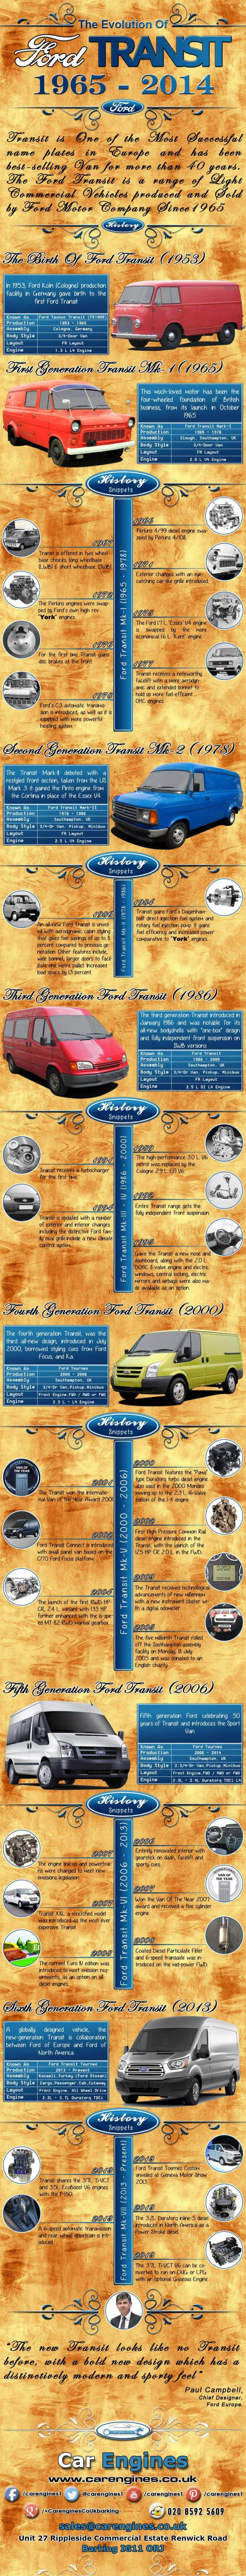 The Evolution of Transit: An Iconic Commercial Vehicle